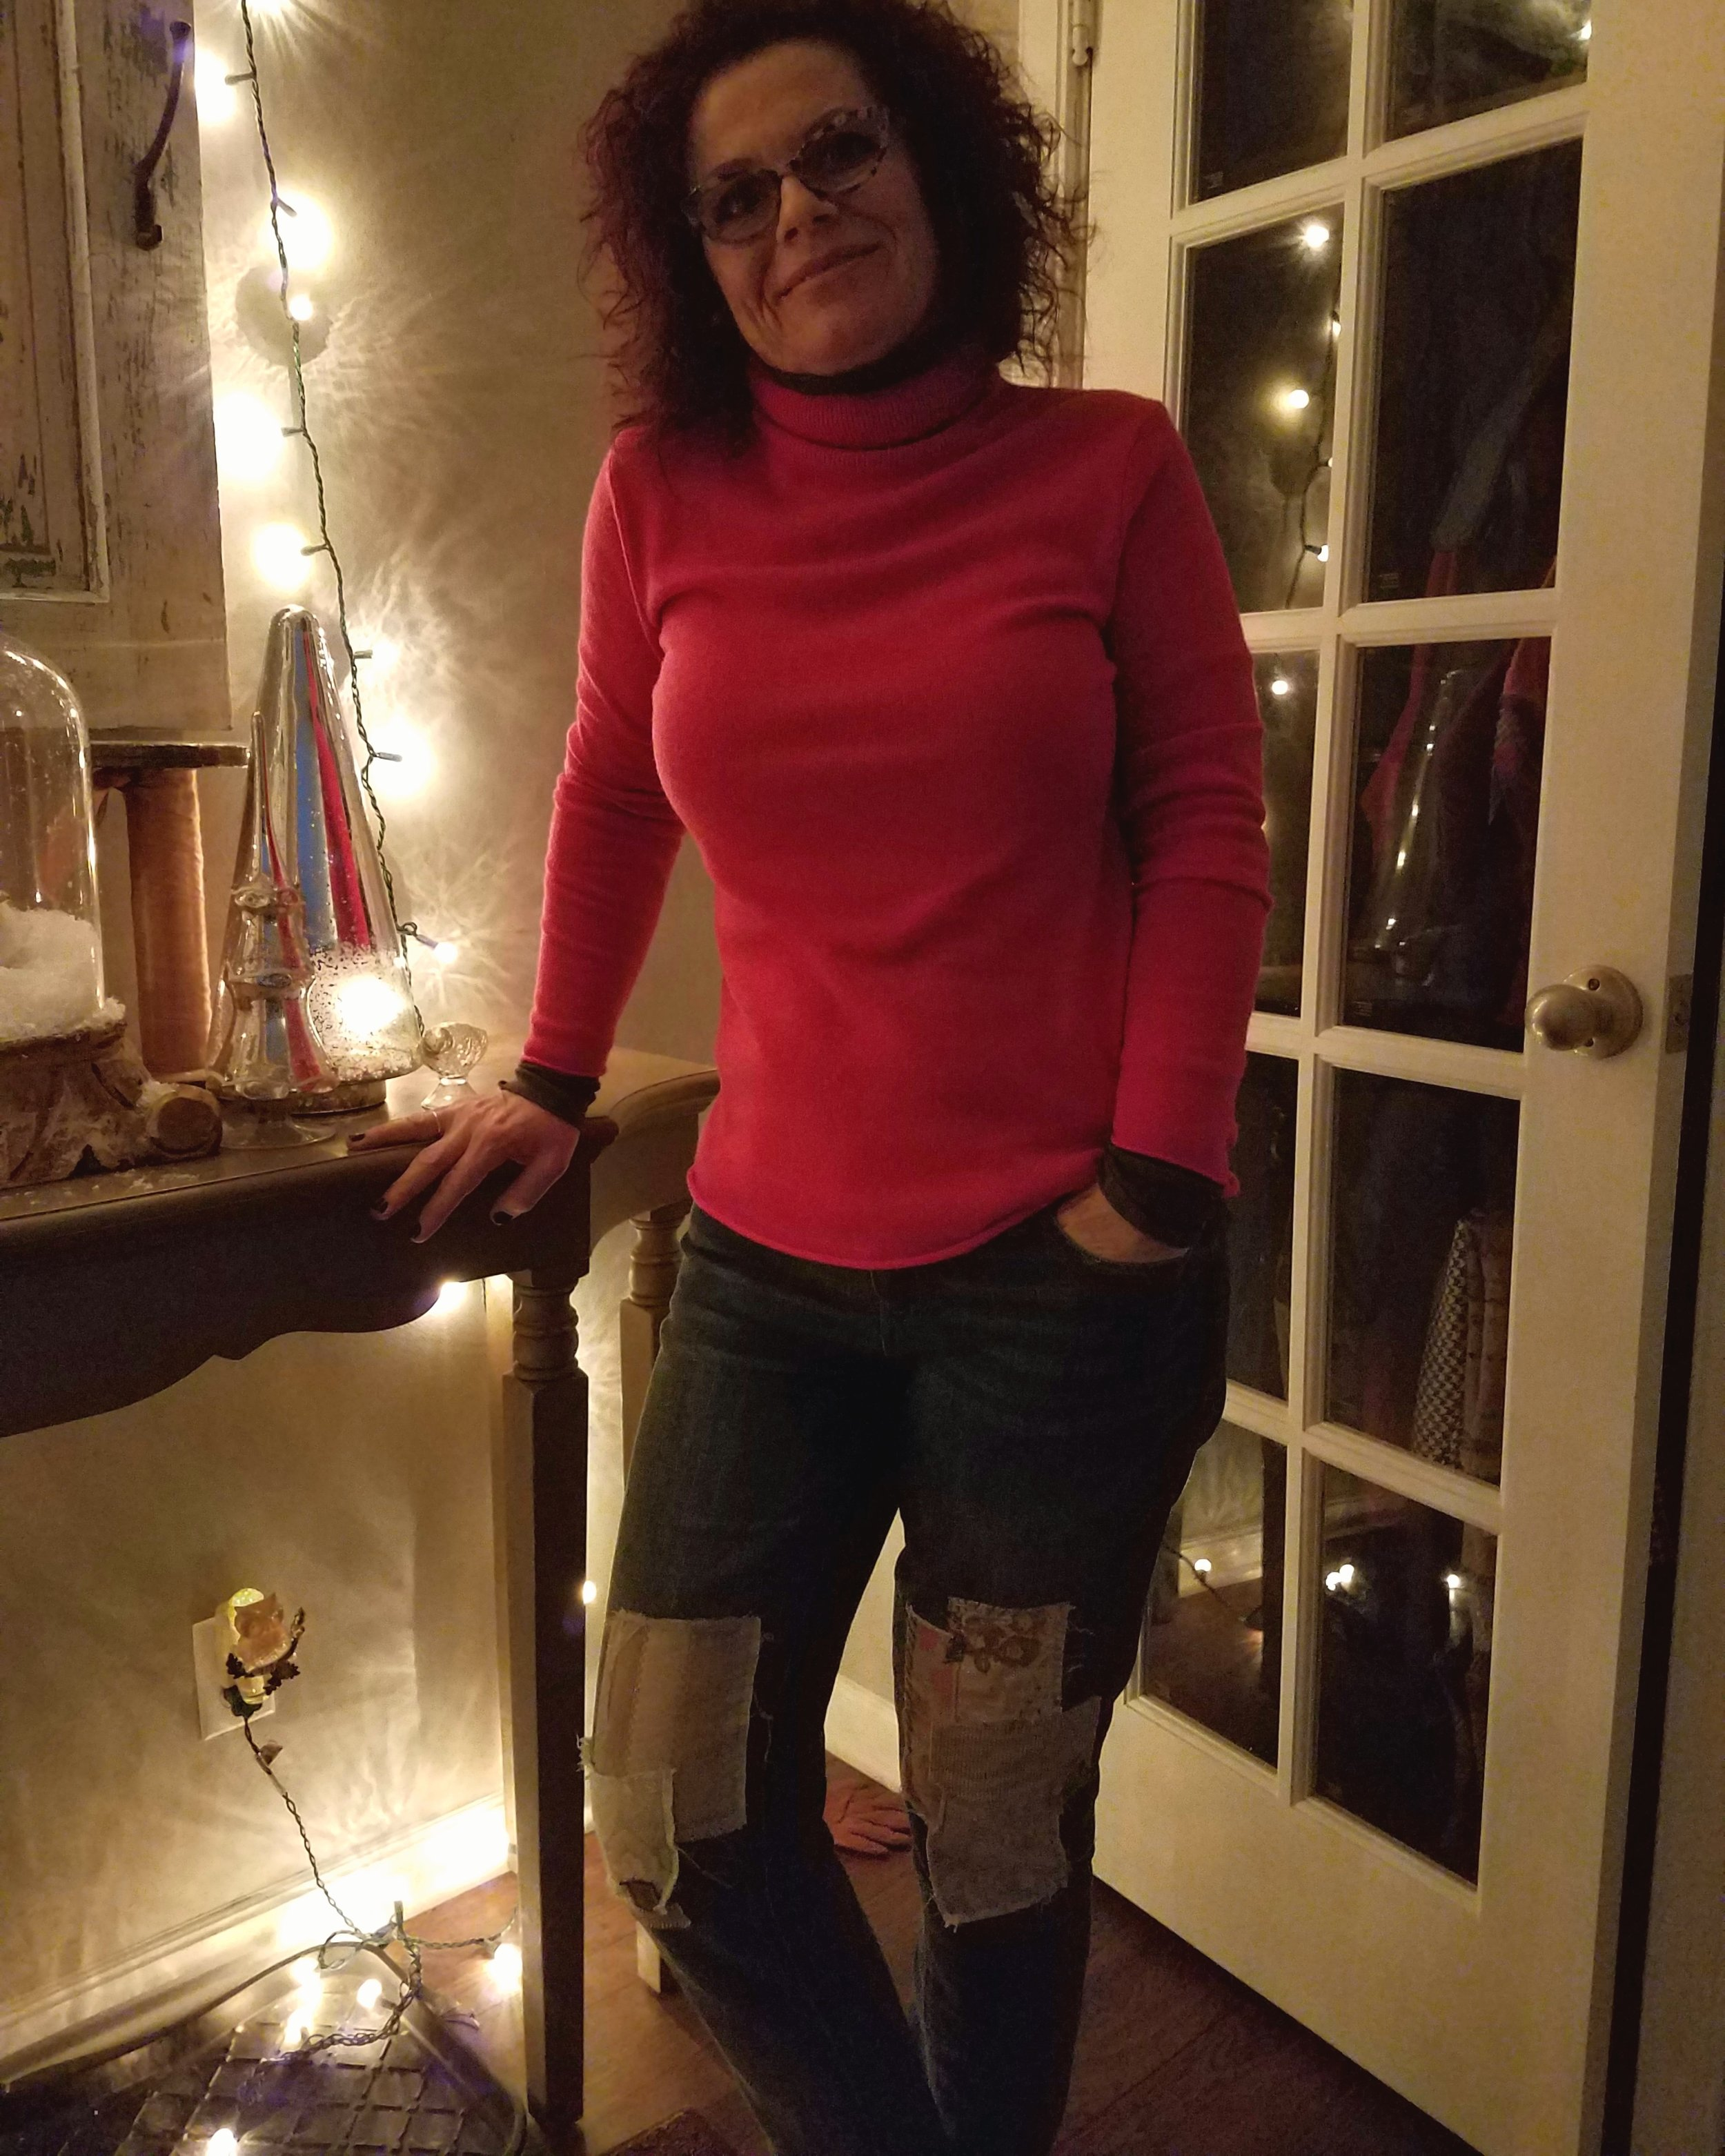 """Another bright pop of color with patchwork jeans for a cozy date night. One of my """"Winter Uniforms"""" tends to be a turtleneck and jeans. The turtleneck is often black or gray - it's nice to mix it up a bit with this great color."""